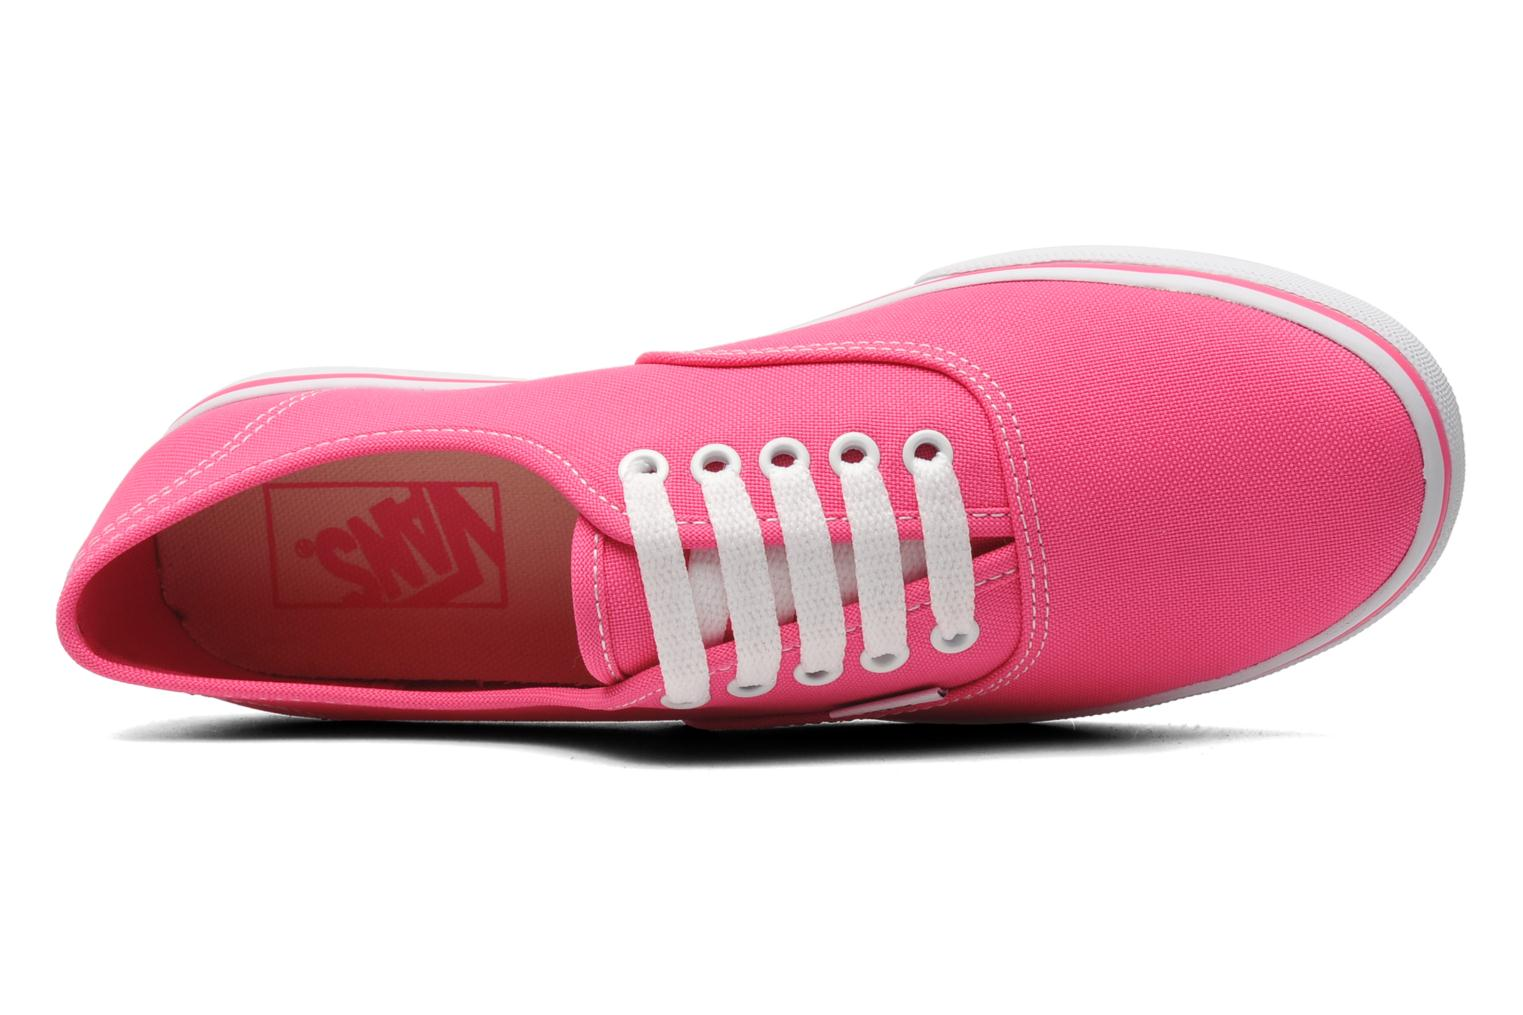 Authentic Lo Pro W (Neon) Pink Glo